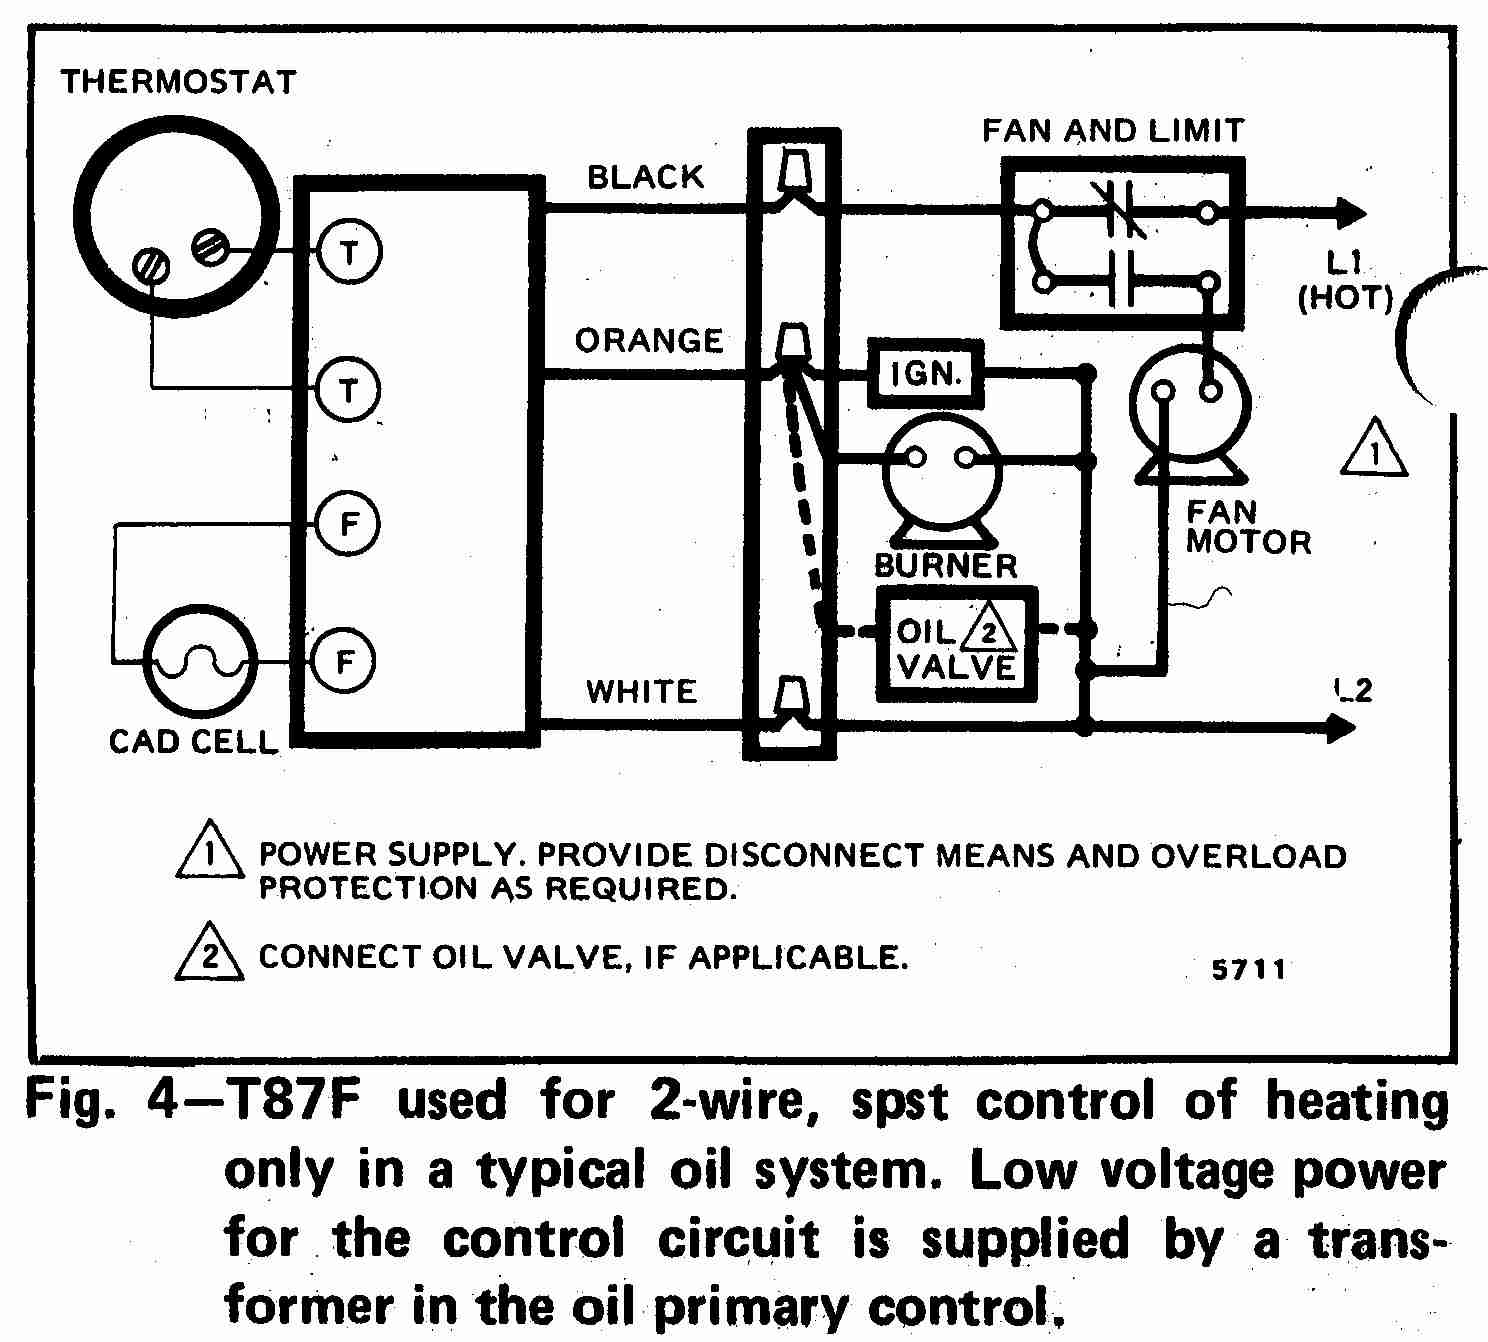 Honeywell Aquastat Wiring Diagram Common C | Wiring Diagram - Honeywell Aquastat Wiring Diagram